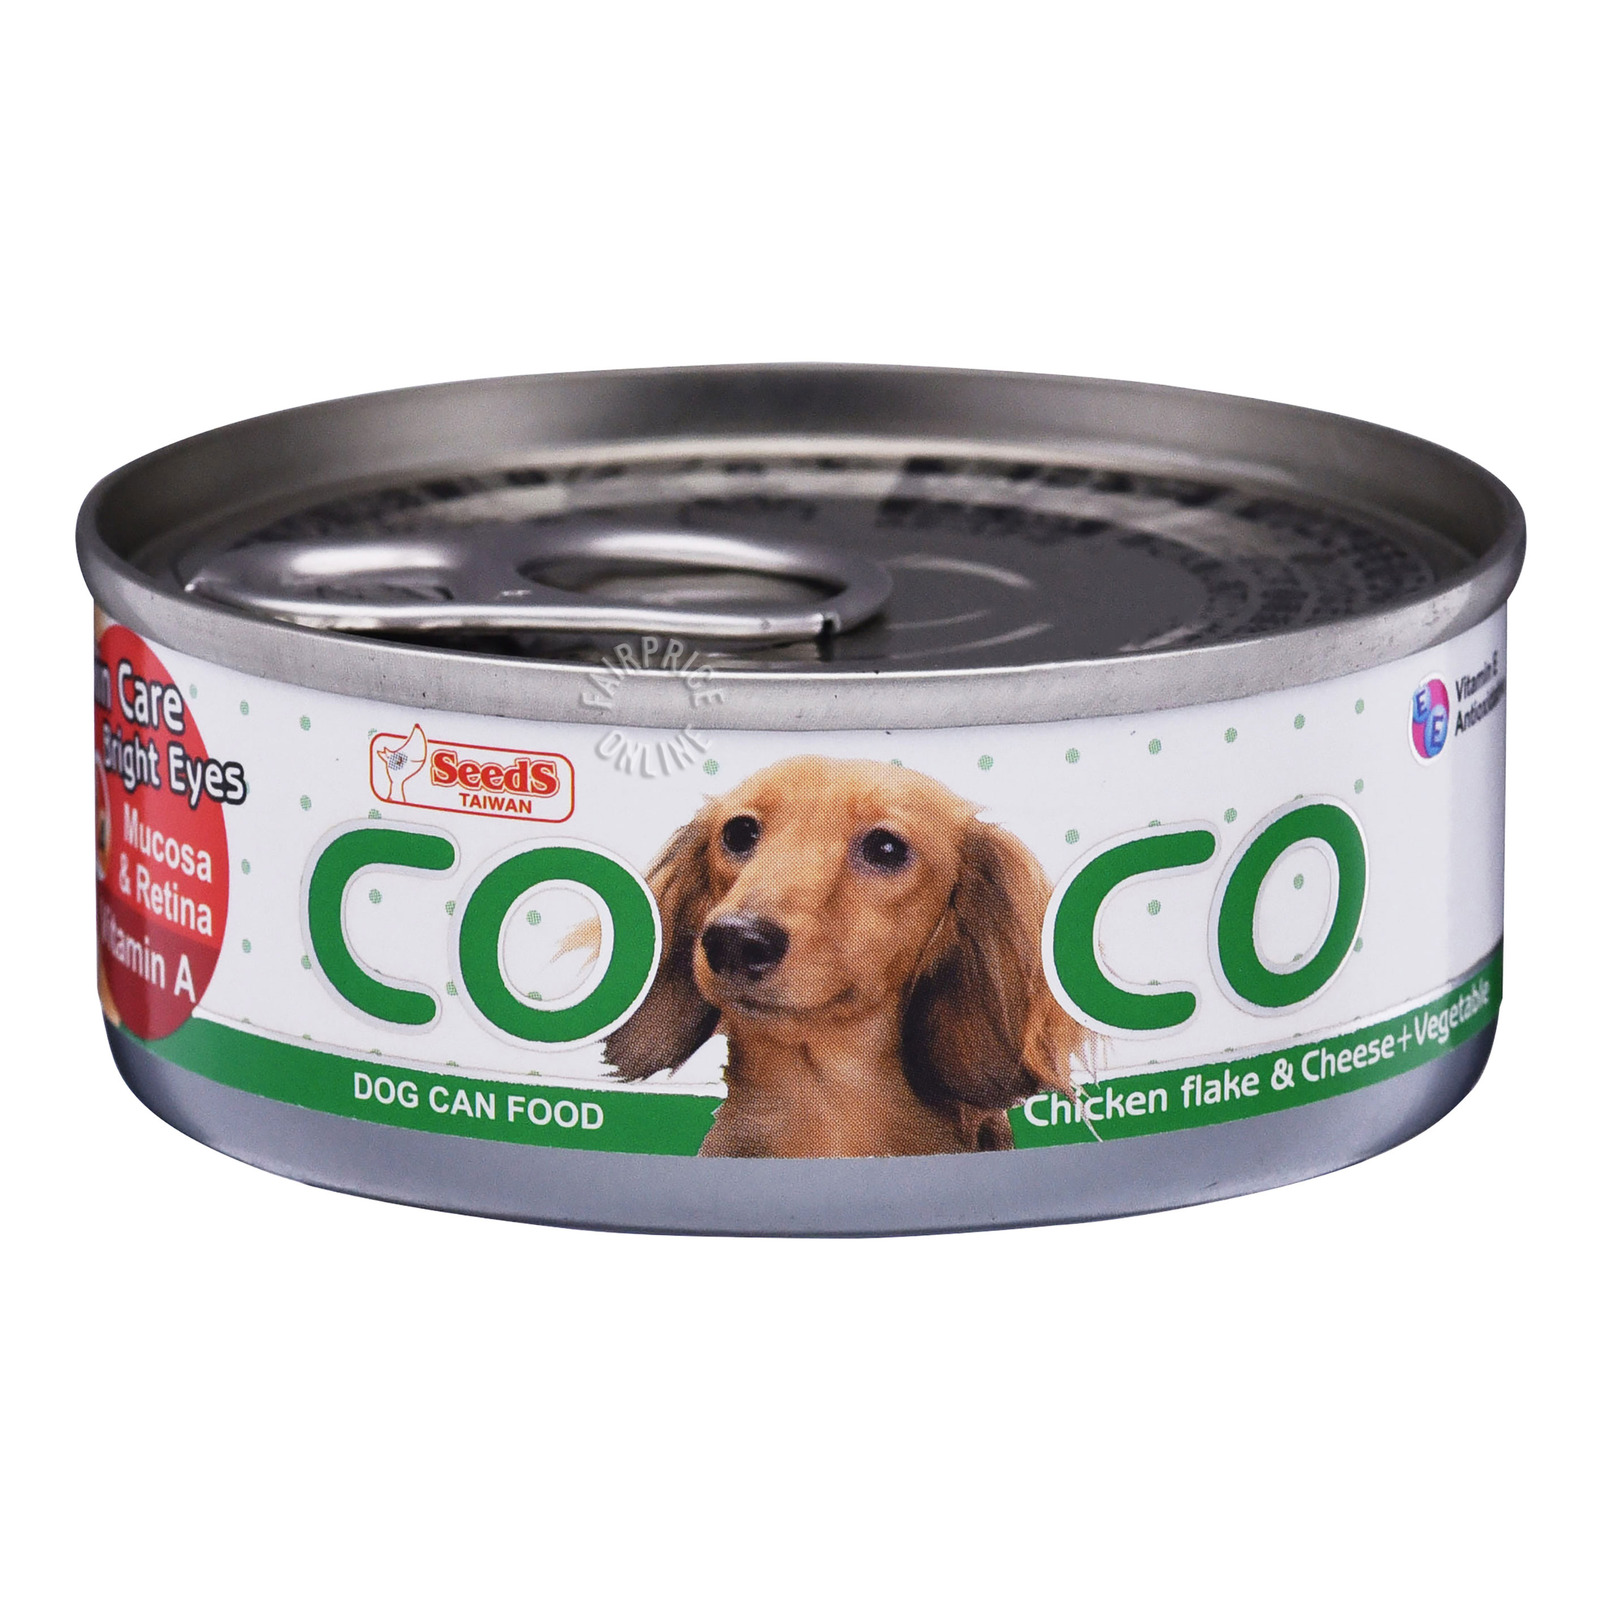 Coco Dog Can Food - Chicken Flake, Cheese & Vegetable